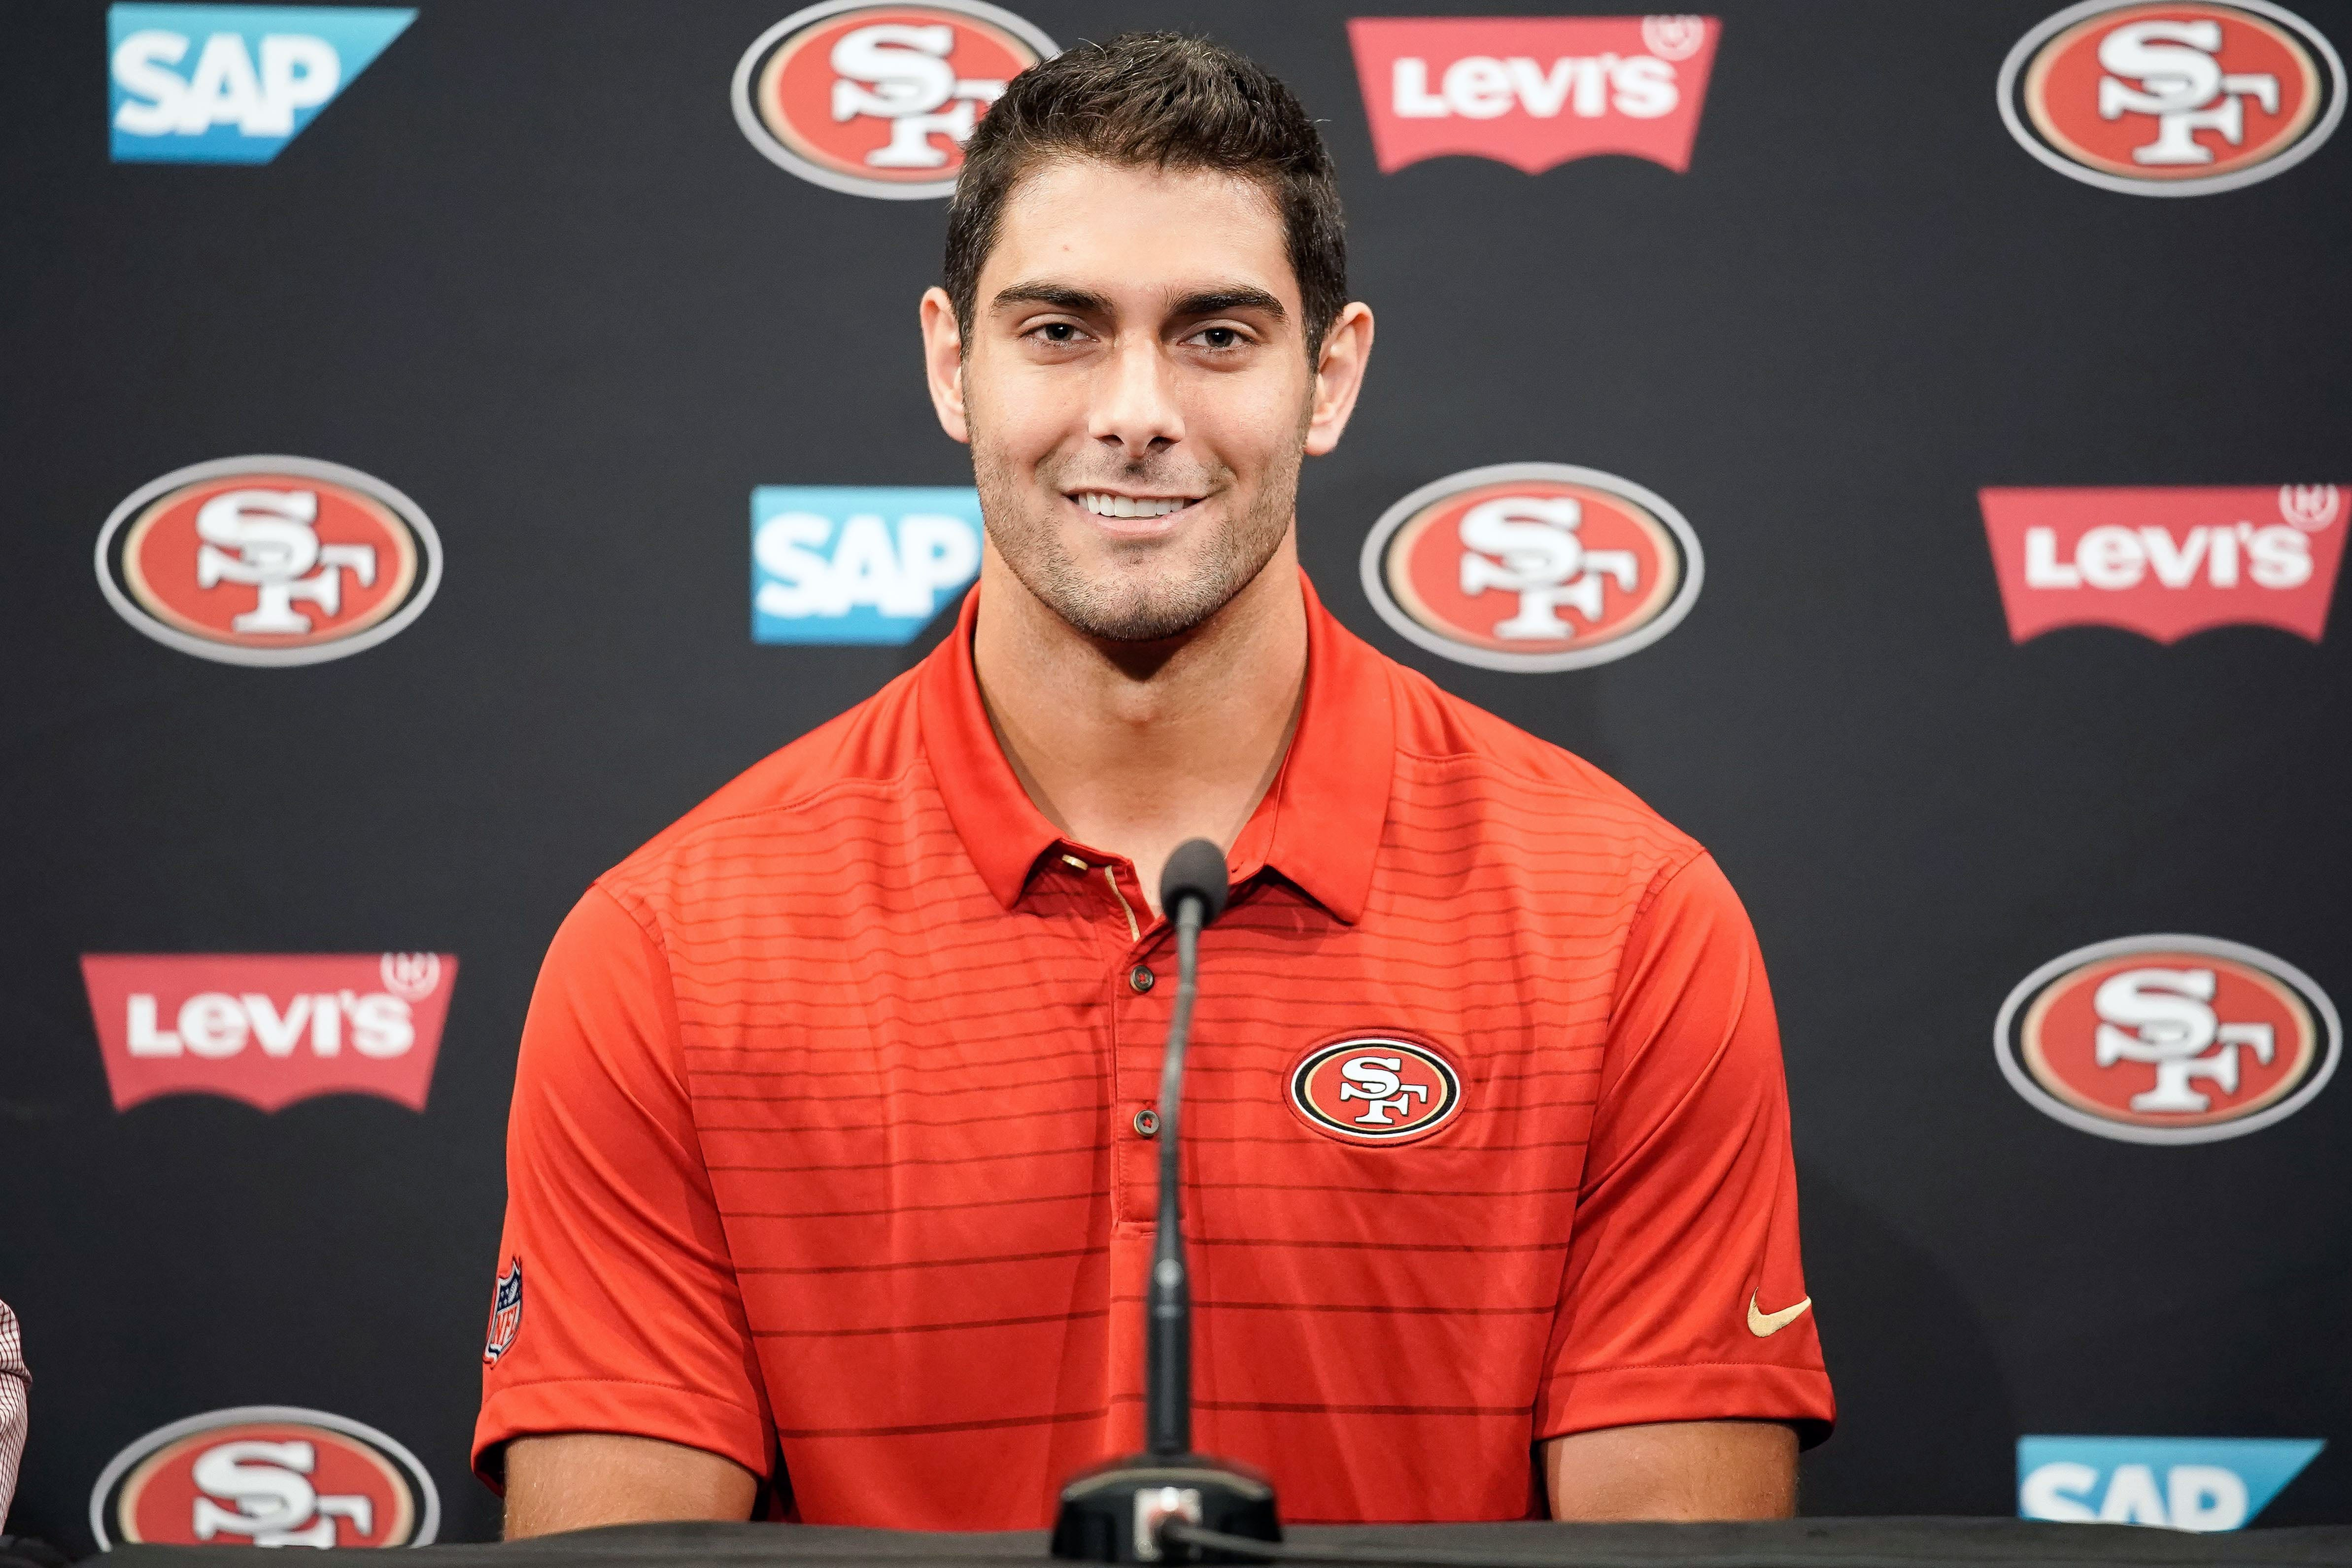 49ers coach on Jimmy Garoppolo: 'I can't promise he'll play this year'